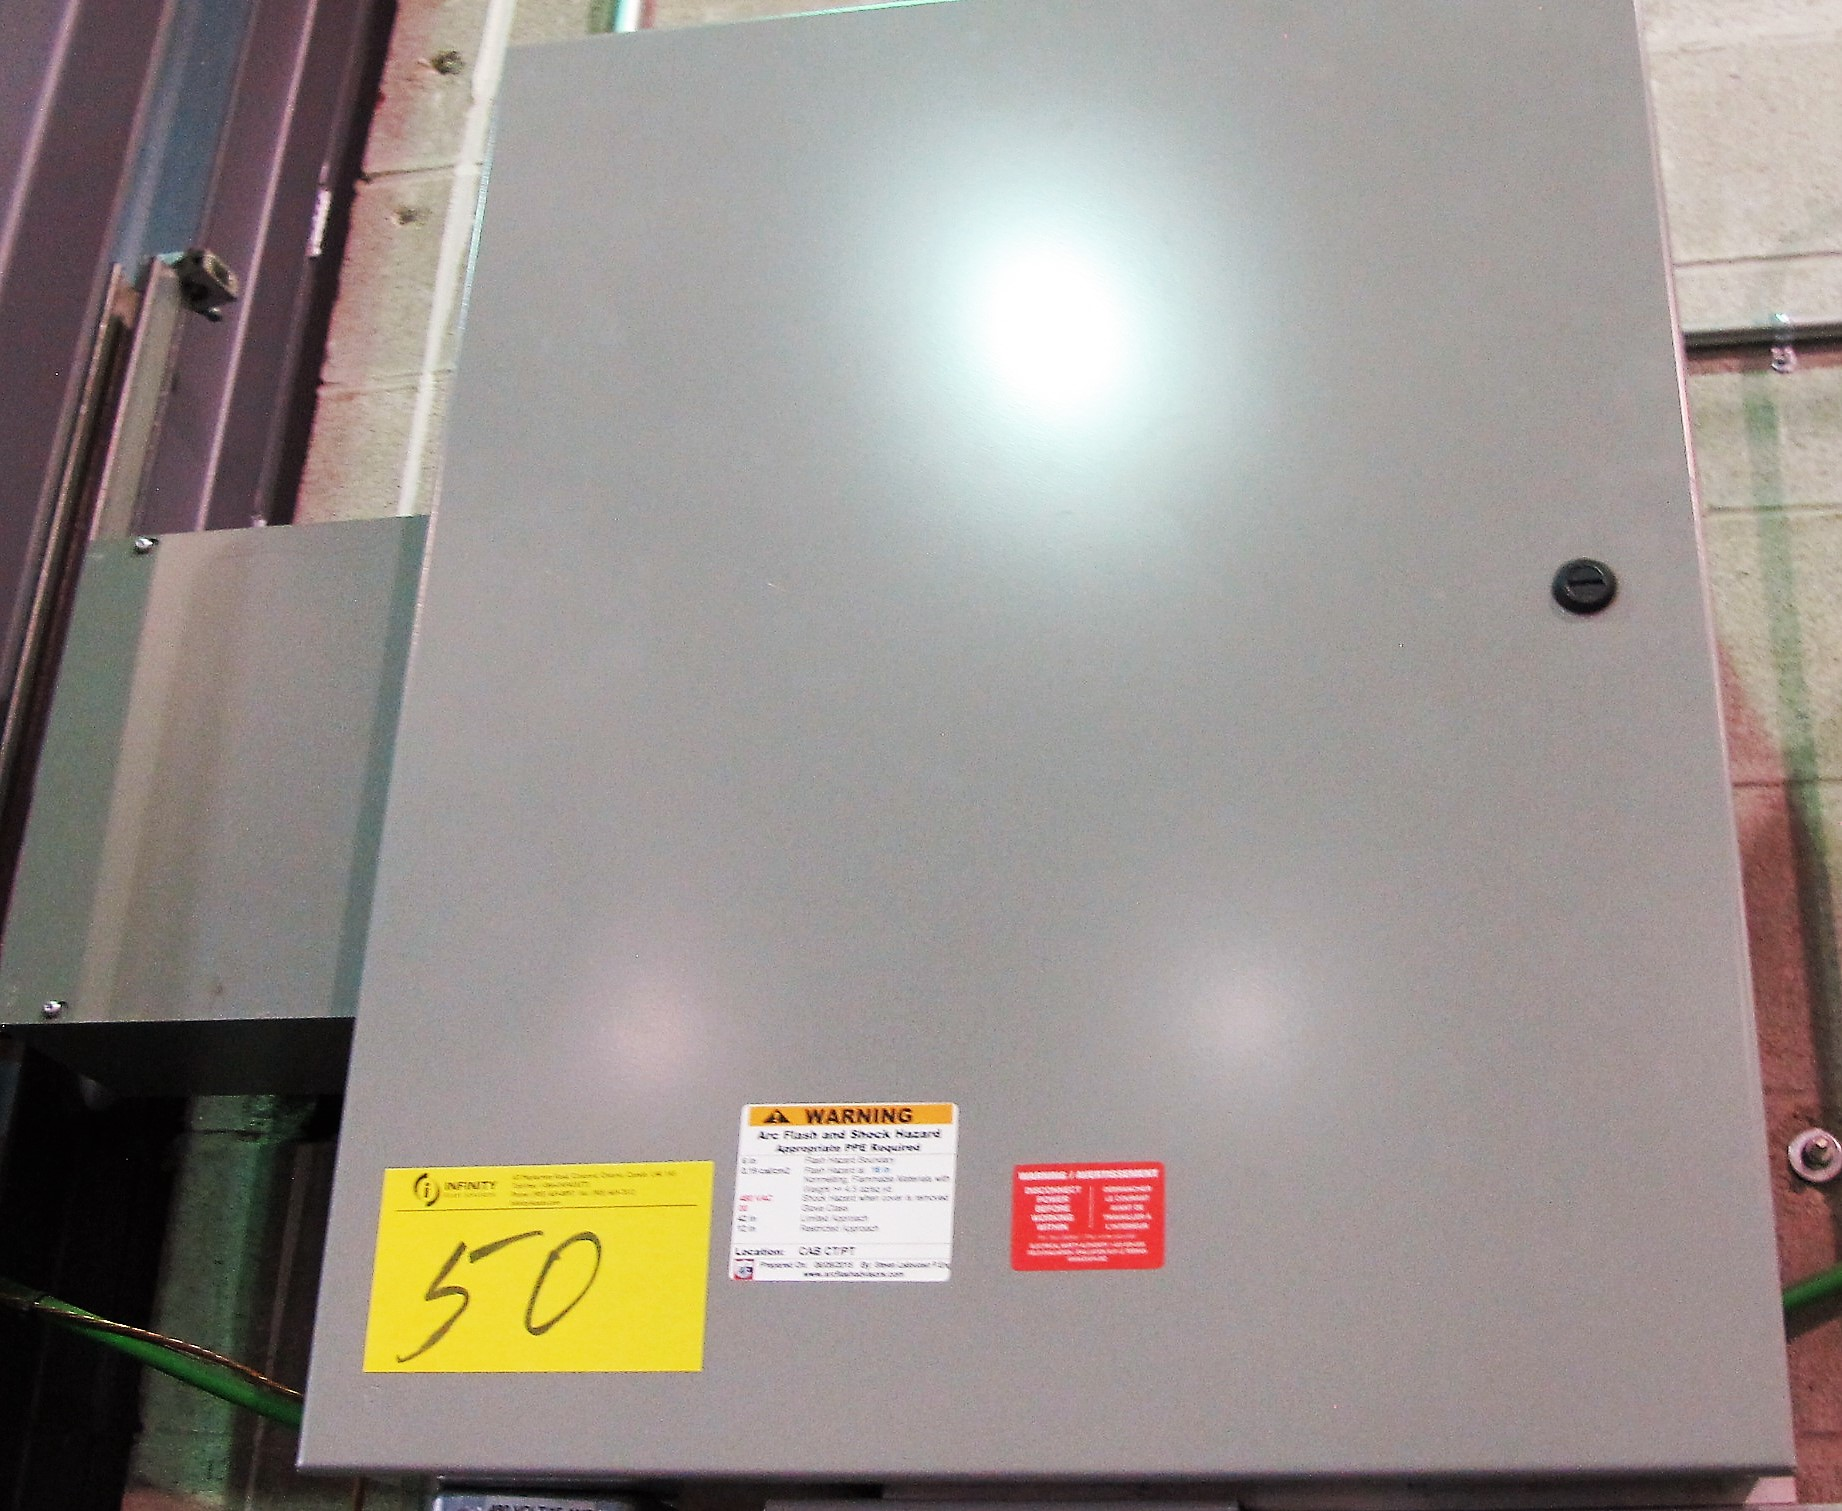 Lot 50 - REACTOR ELECTRICAL CABINET, COOLING PUMP TEST STATION